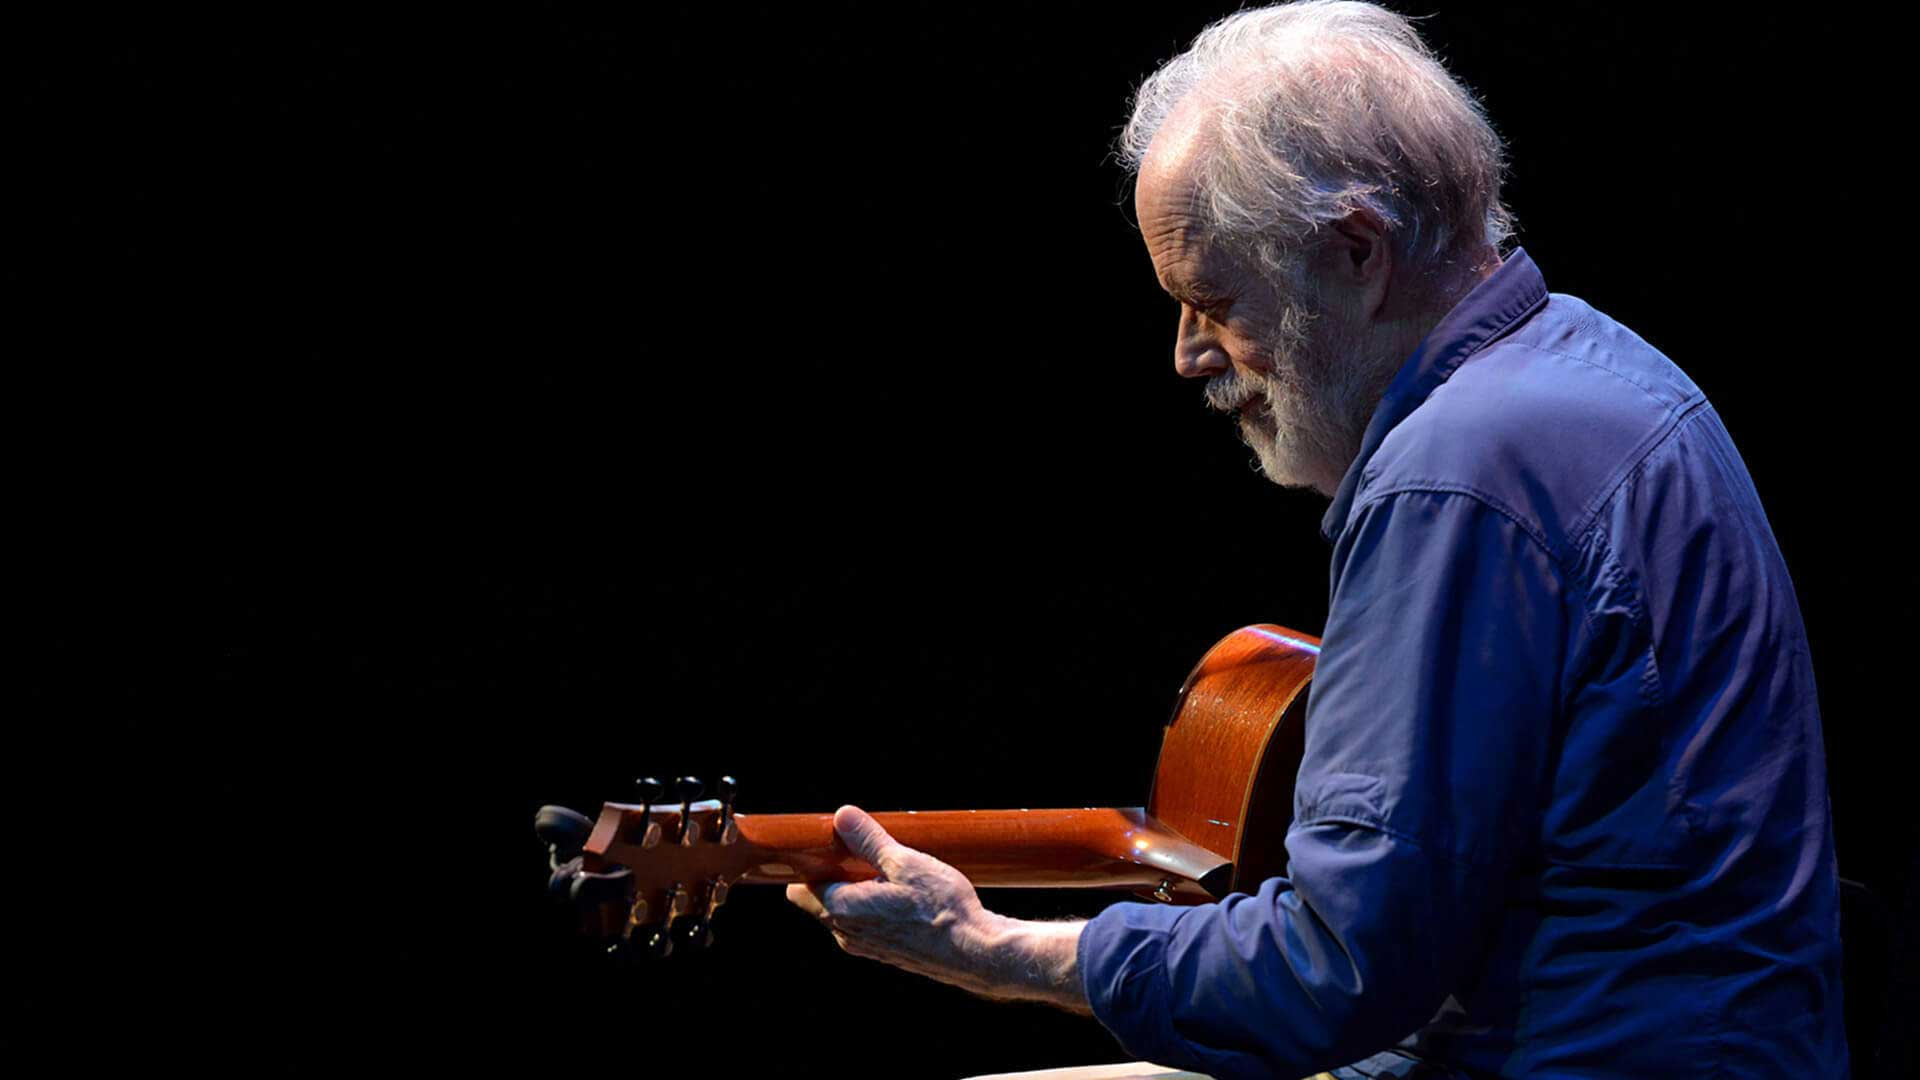 Leo Kottke beneath a spotlight on an darkened stage, working his stunning fingerpicking style on an acoustic guitar.